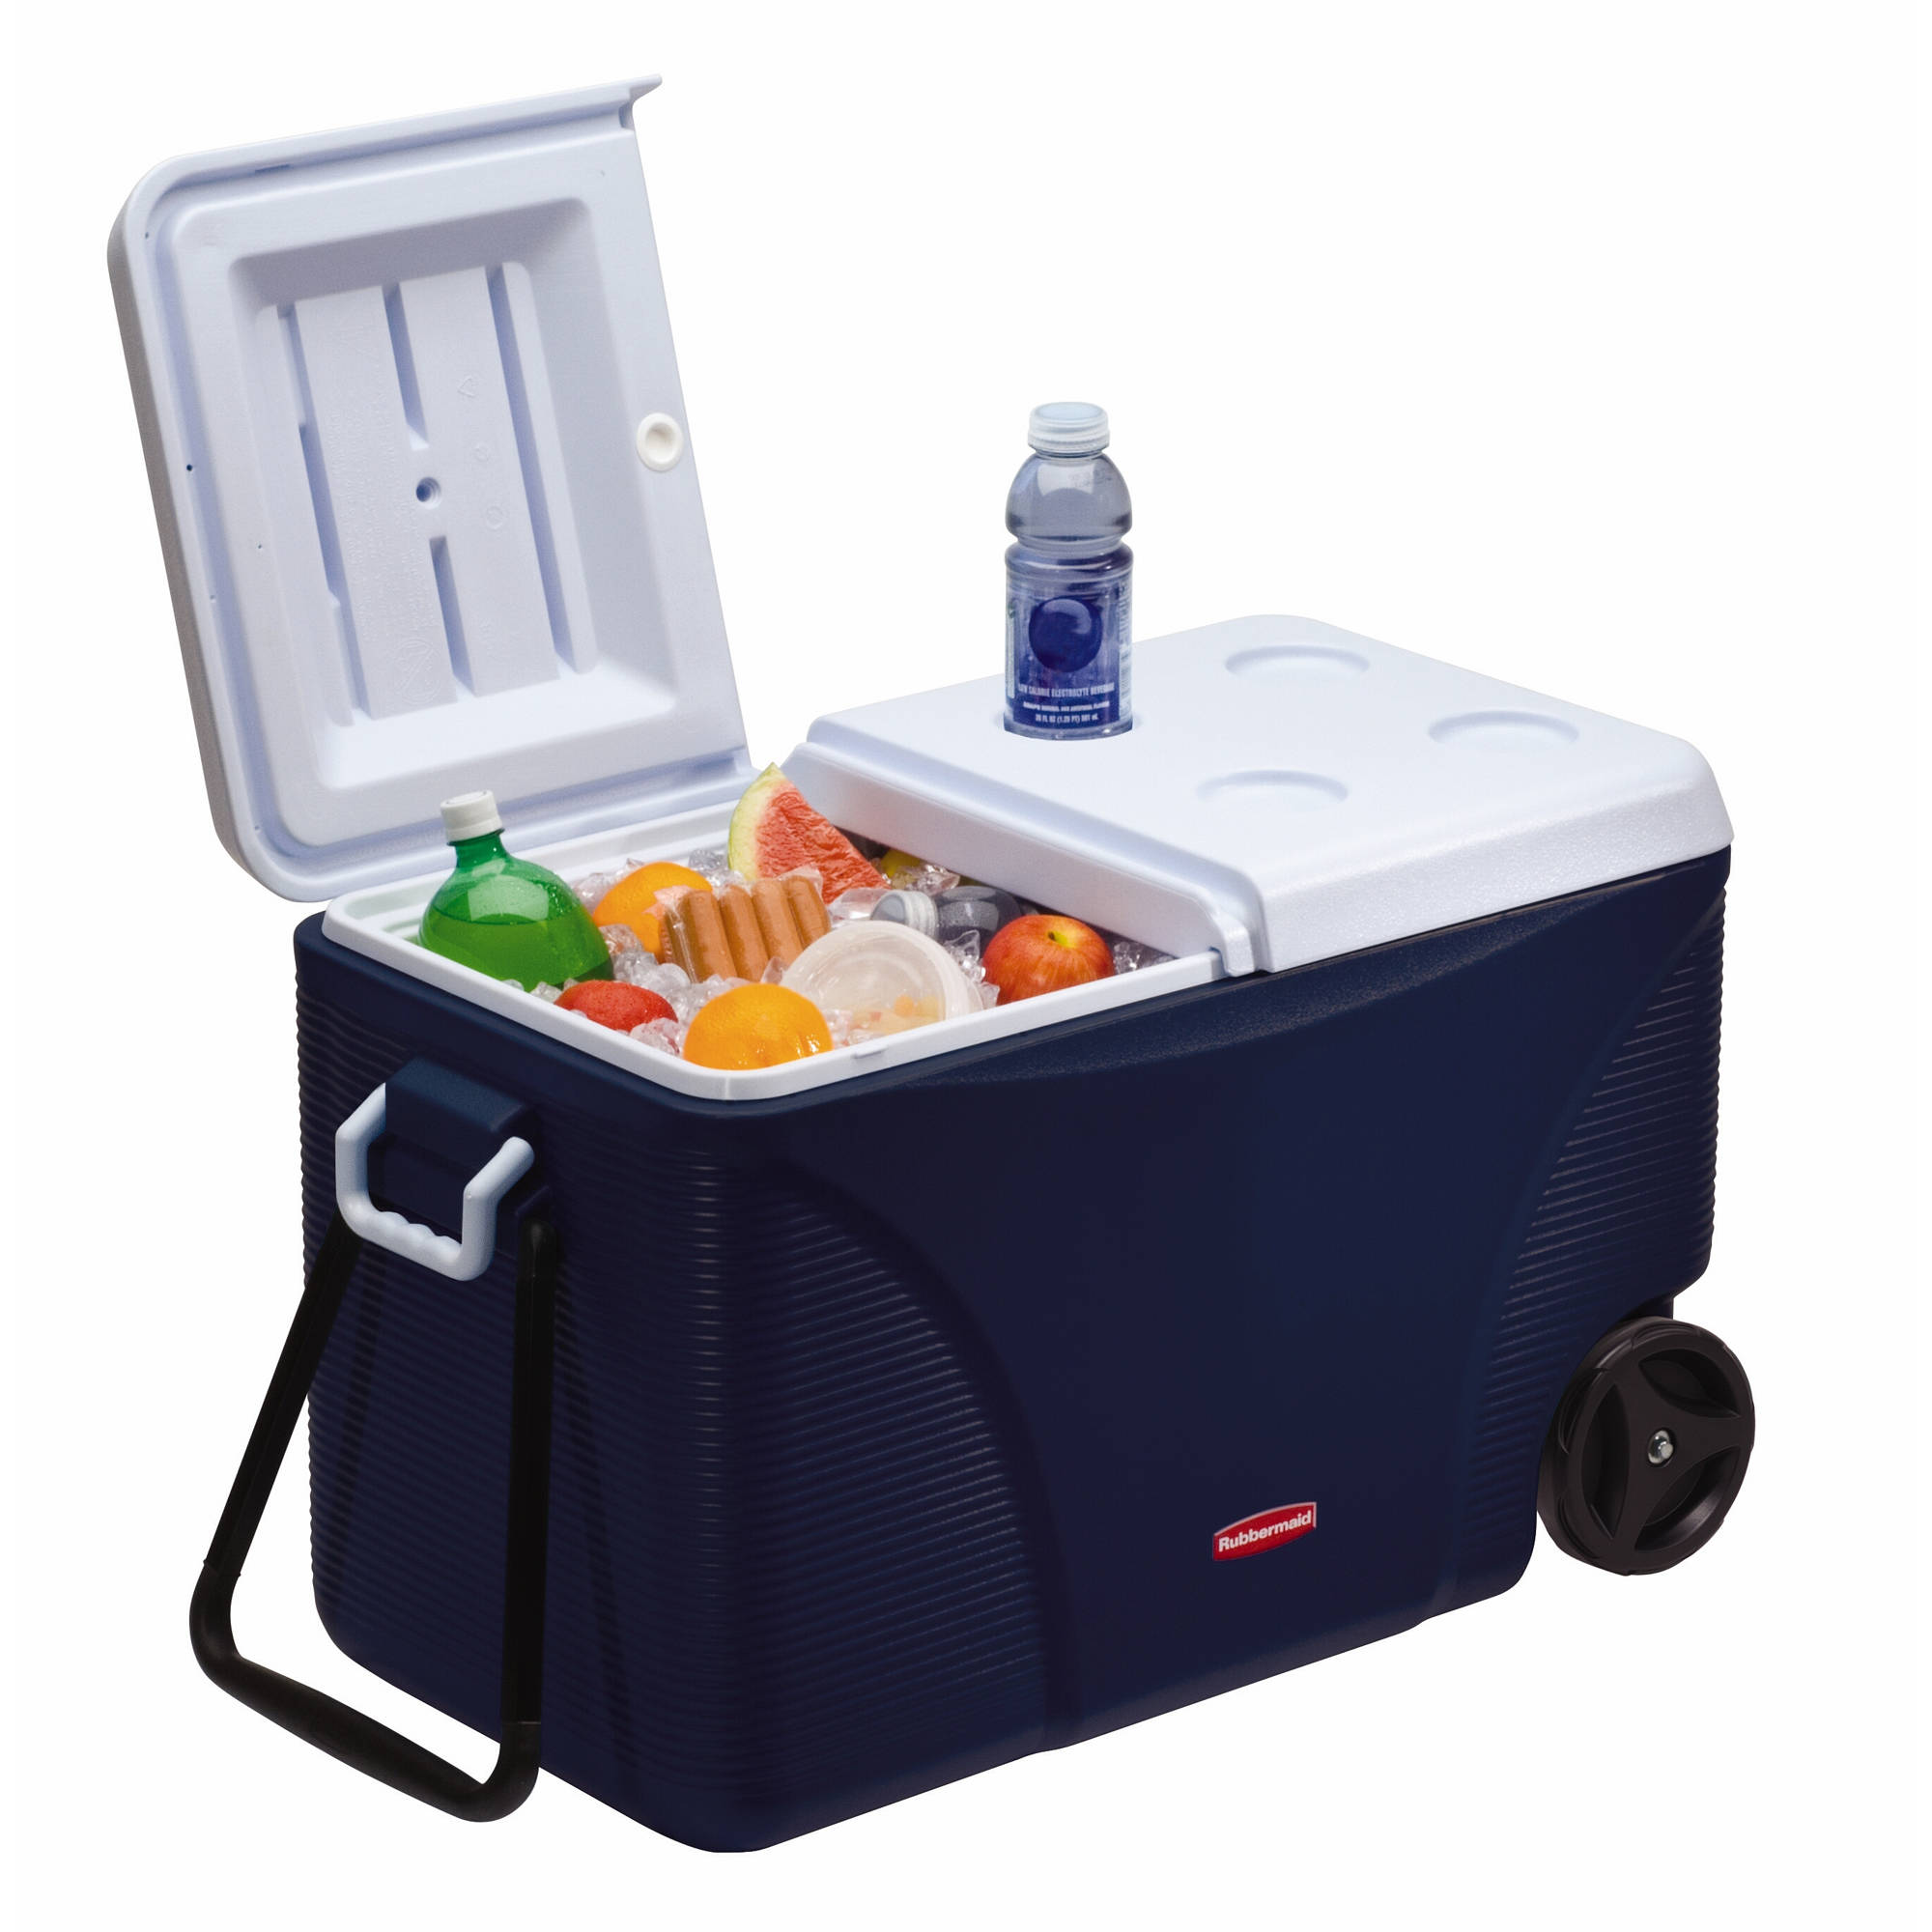 Rubbermaid 75 qt 5-Day Wheeled Ice Chest, Blue